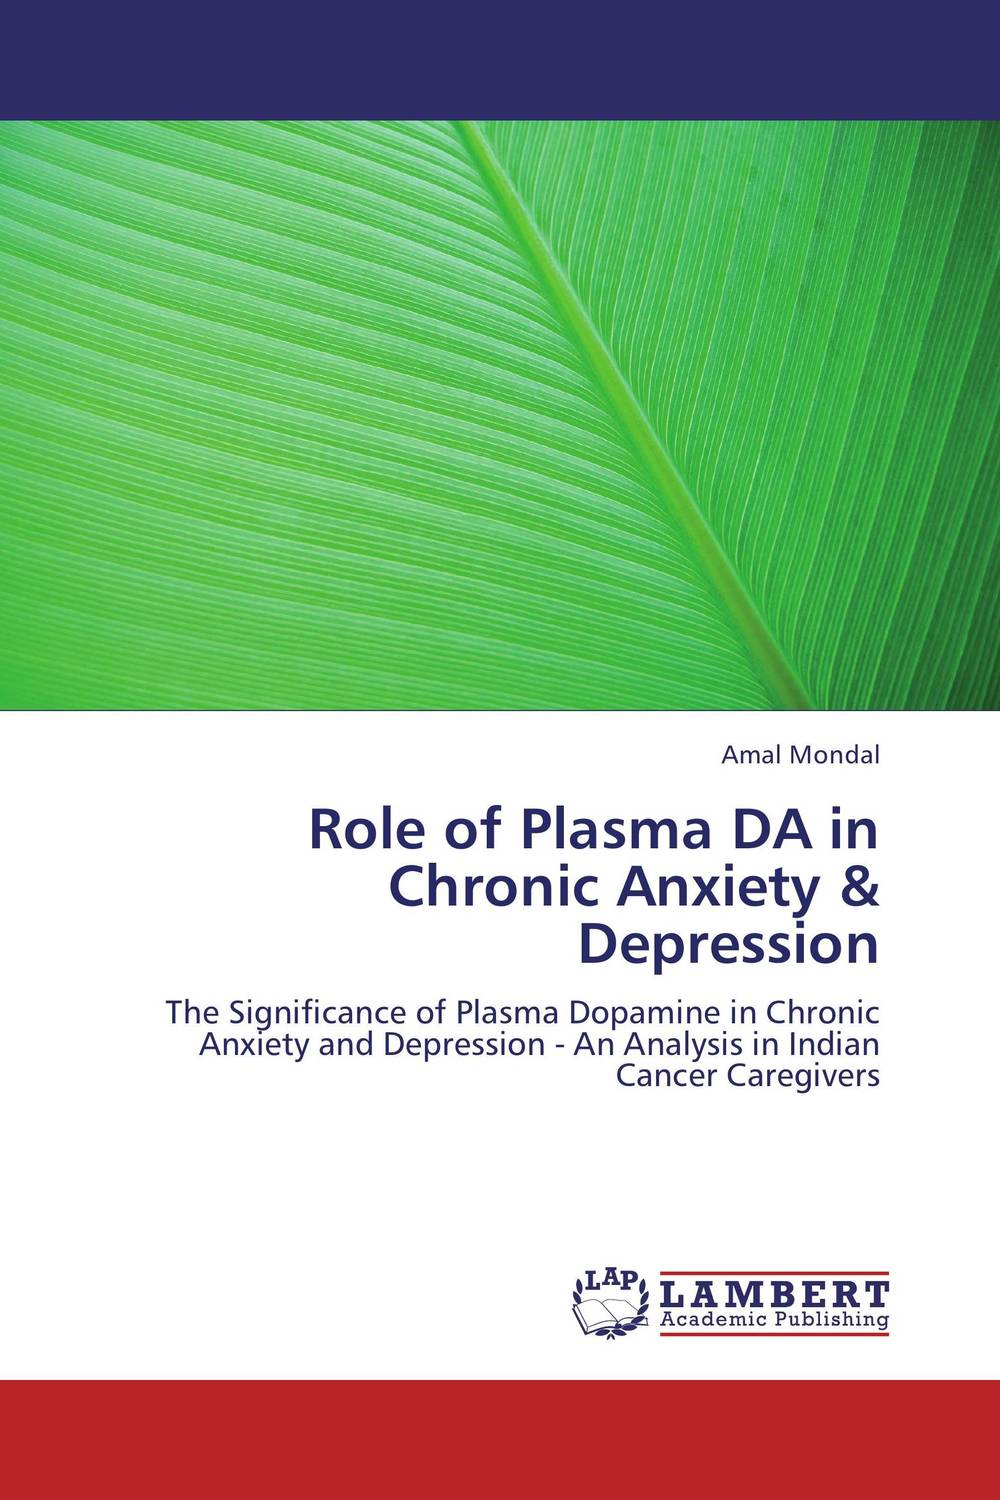 Фото Role of Plasma DA in Chronic Anxiety & Depression cervical cancer in amhara region in ethiopia